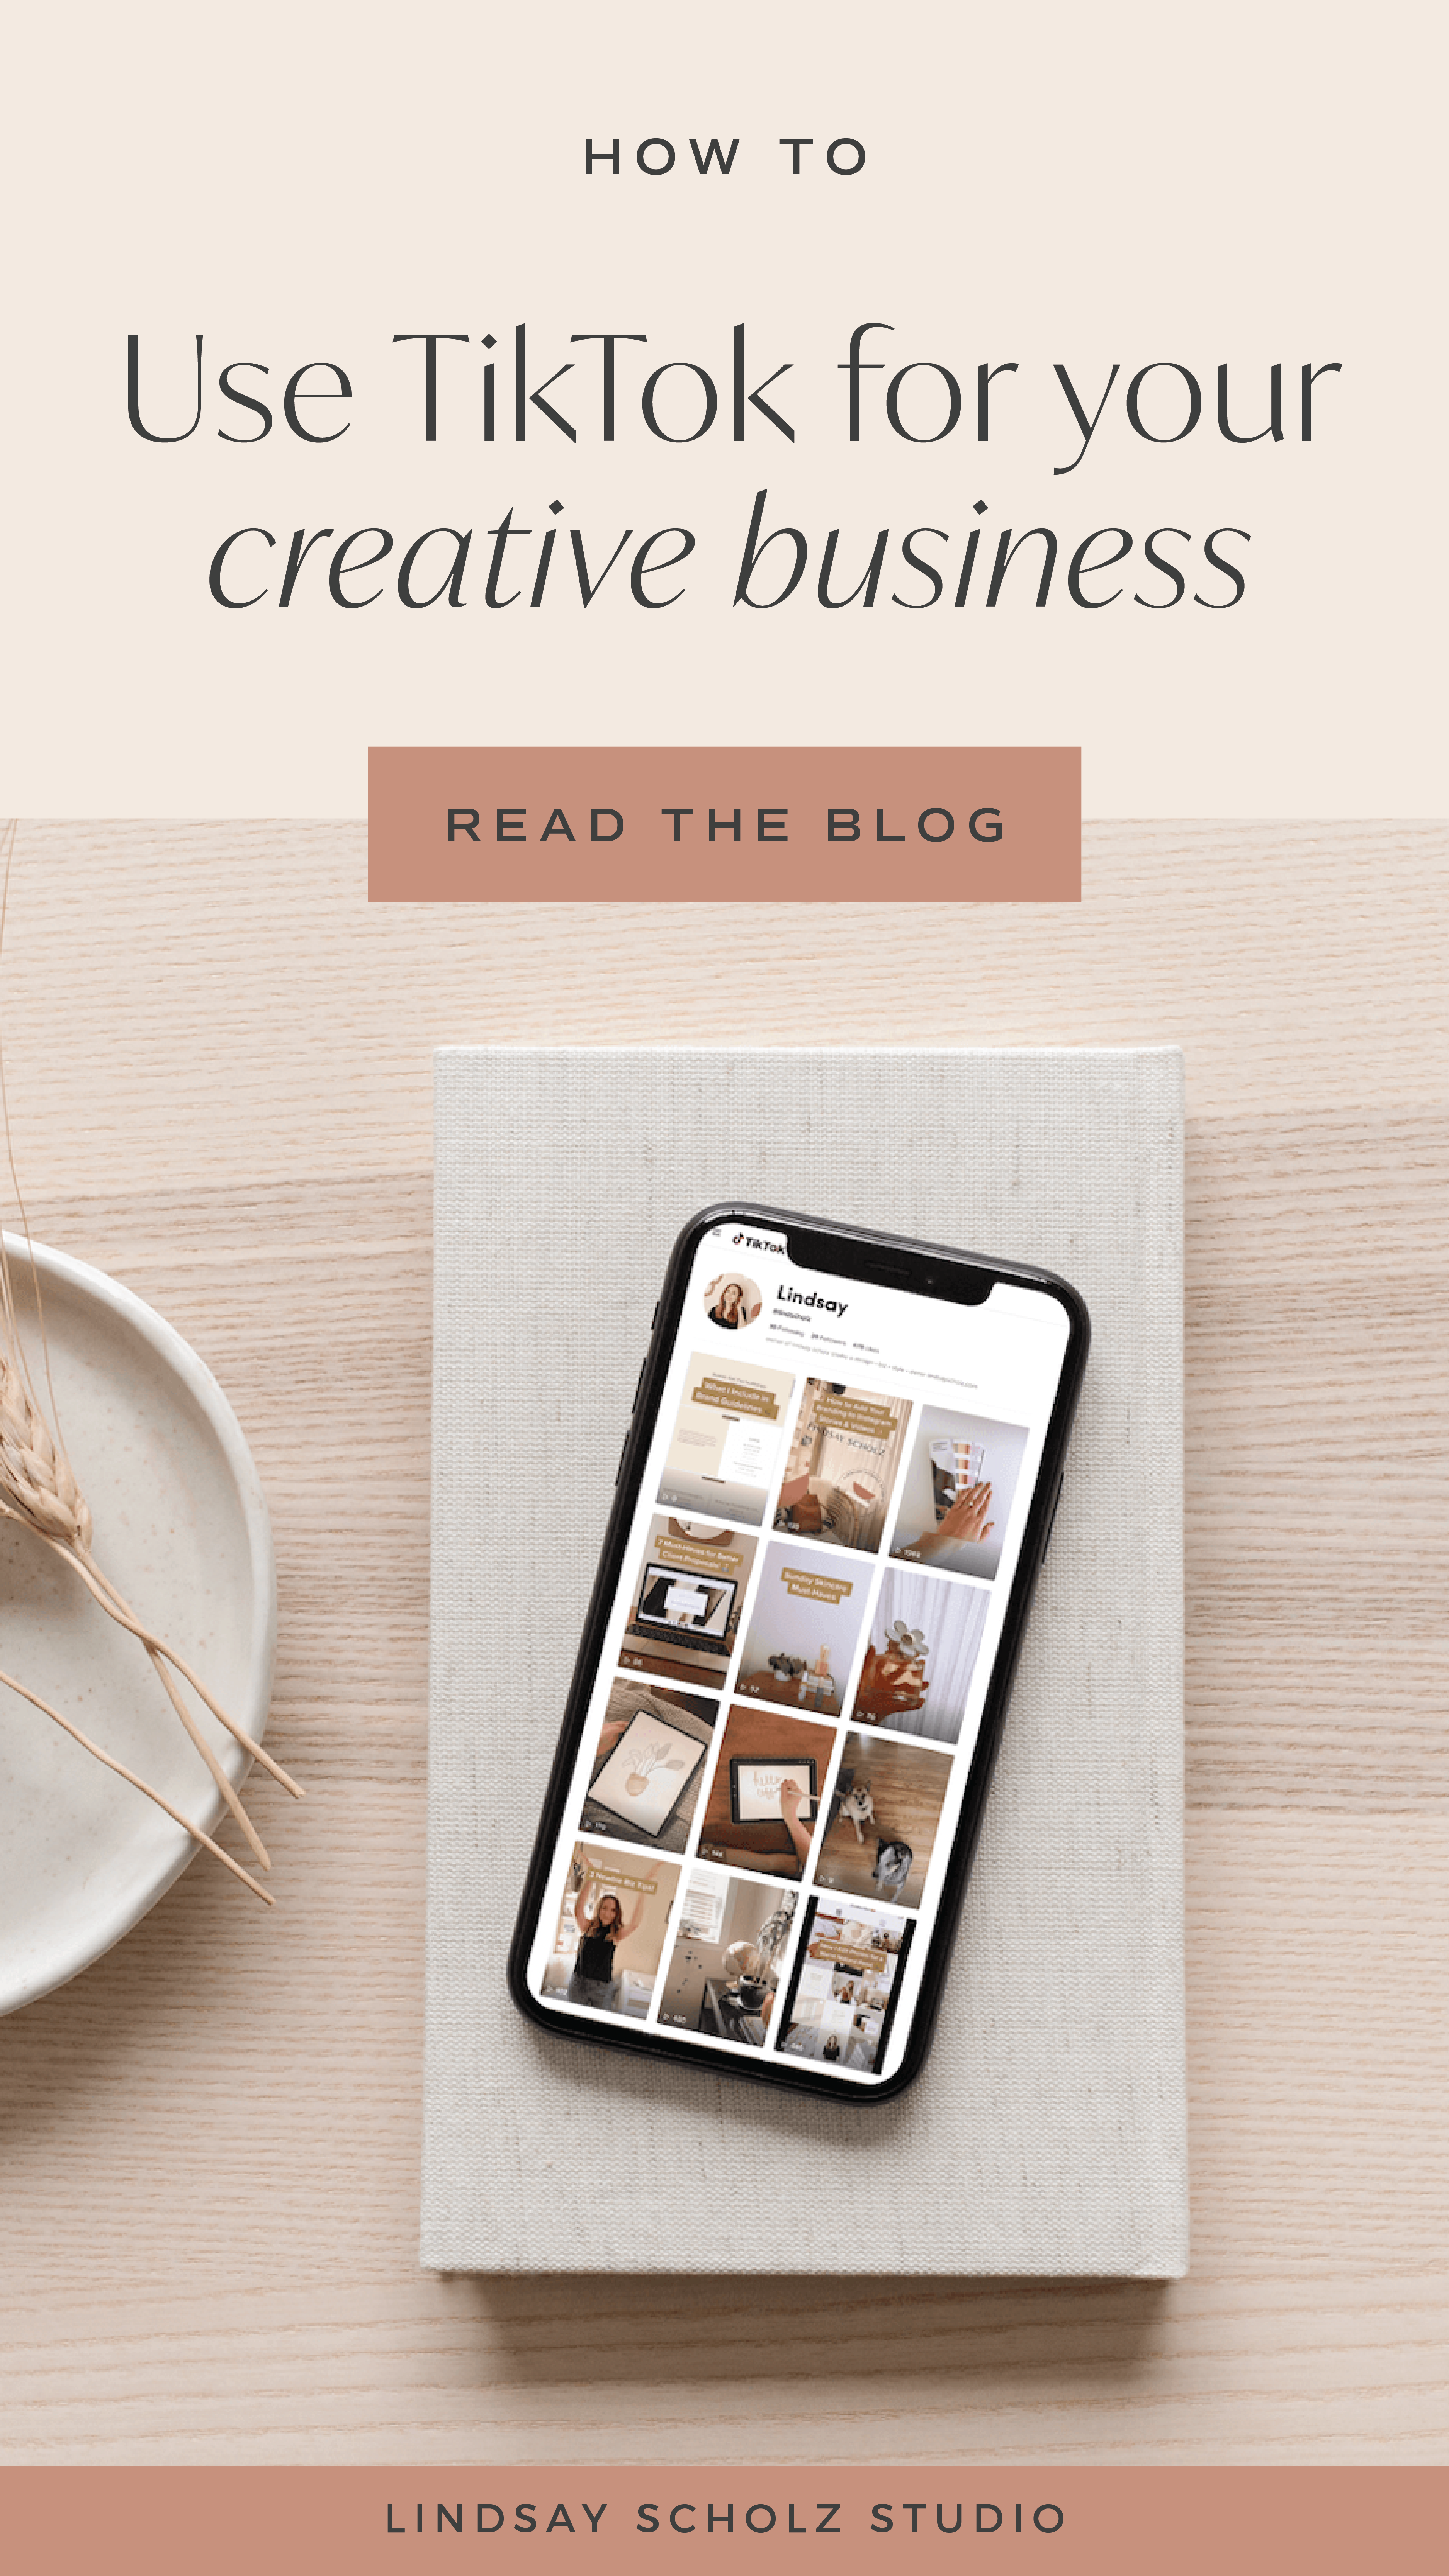 How To Use Tiktok For Business In 2020 Lindsay Scholz Studio Creative Studio For Woman Owned Businesses Small Business Ideas Diy Successful Business Tips Small Business Ideas Startups